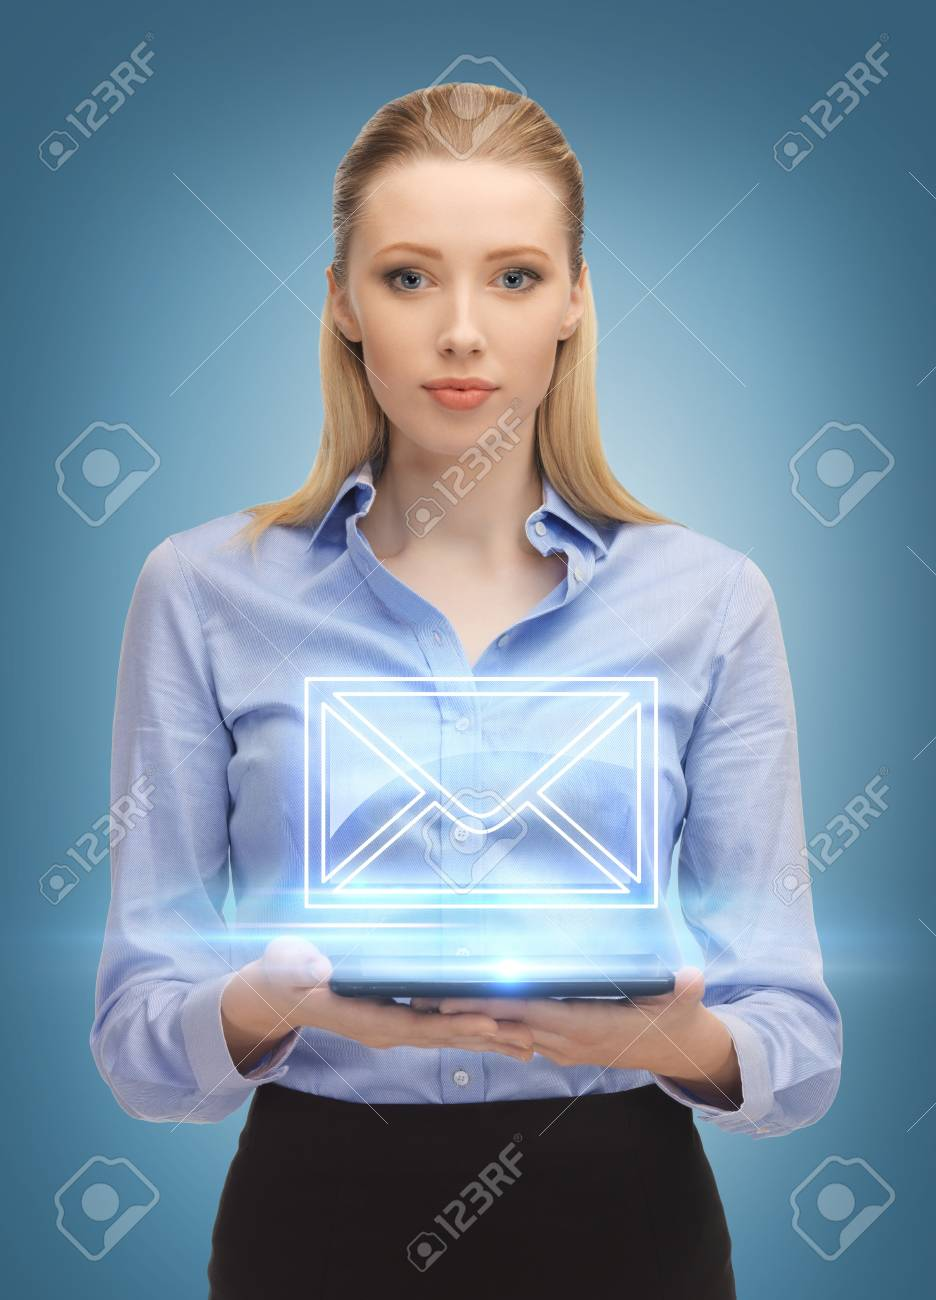 picture of beautiful woman with tablet pc sending e-mail Stock Photo - 18530757